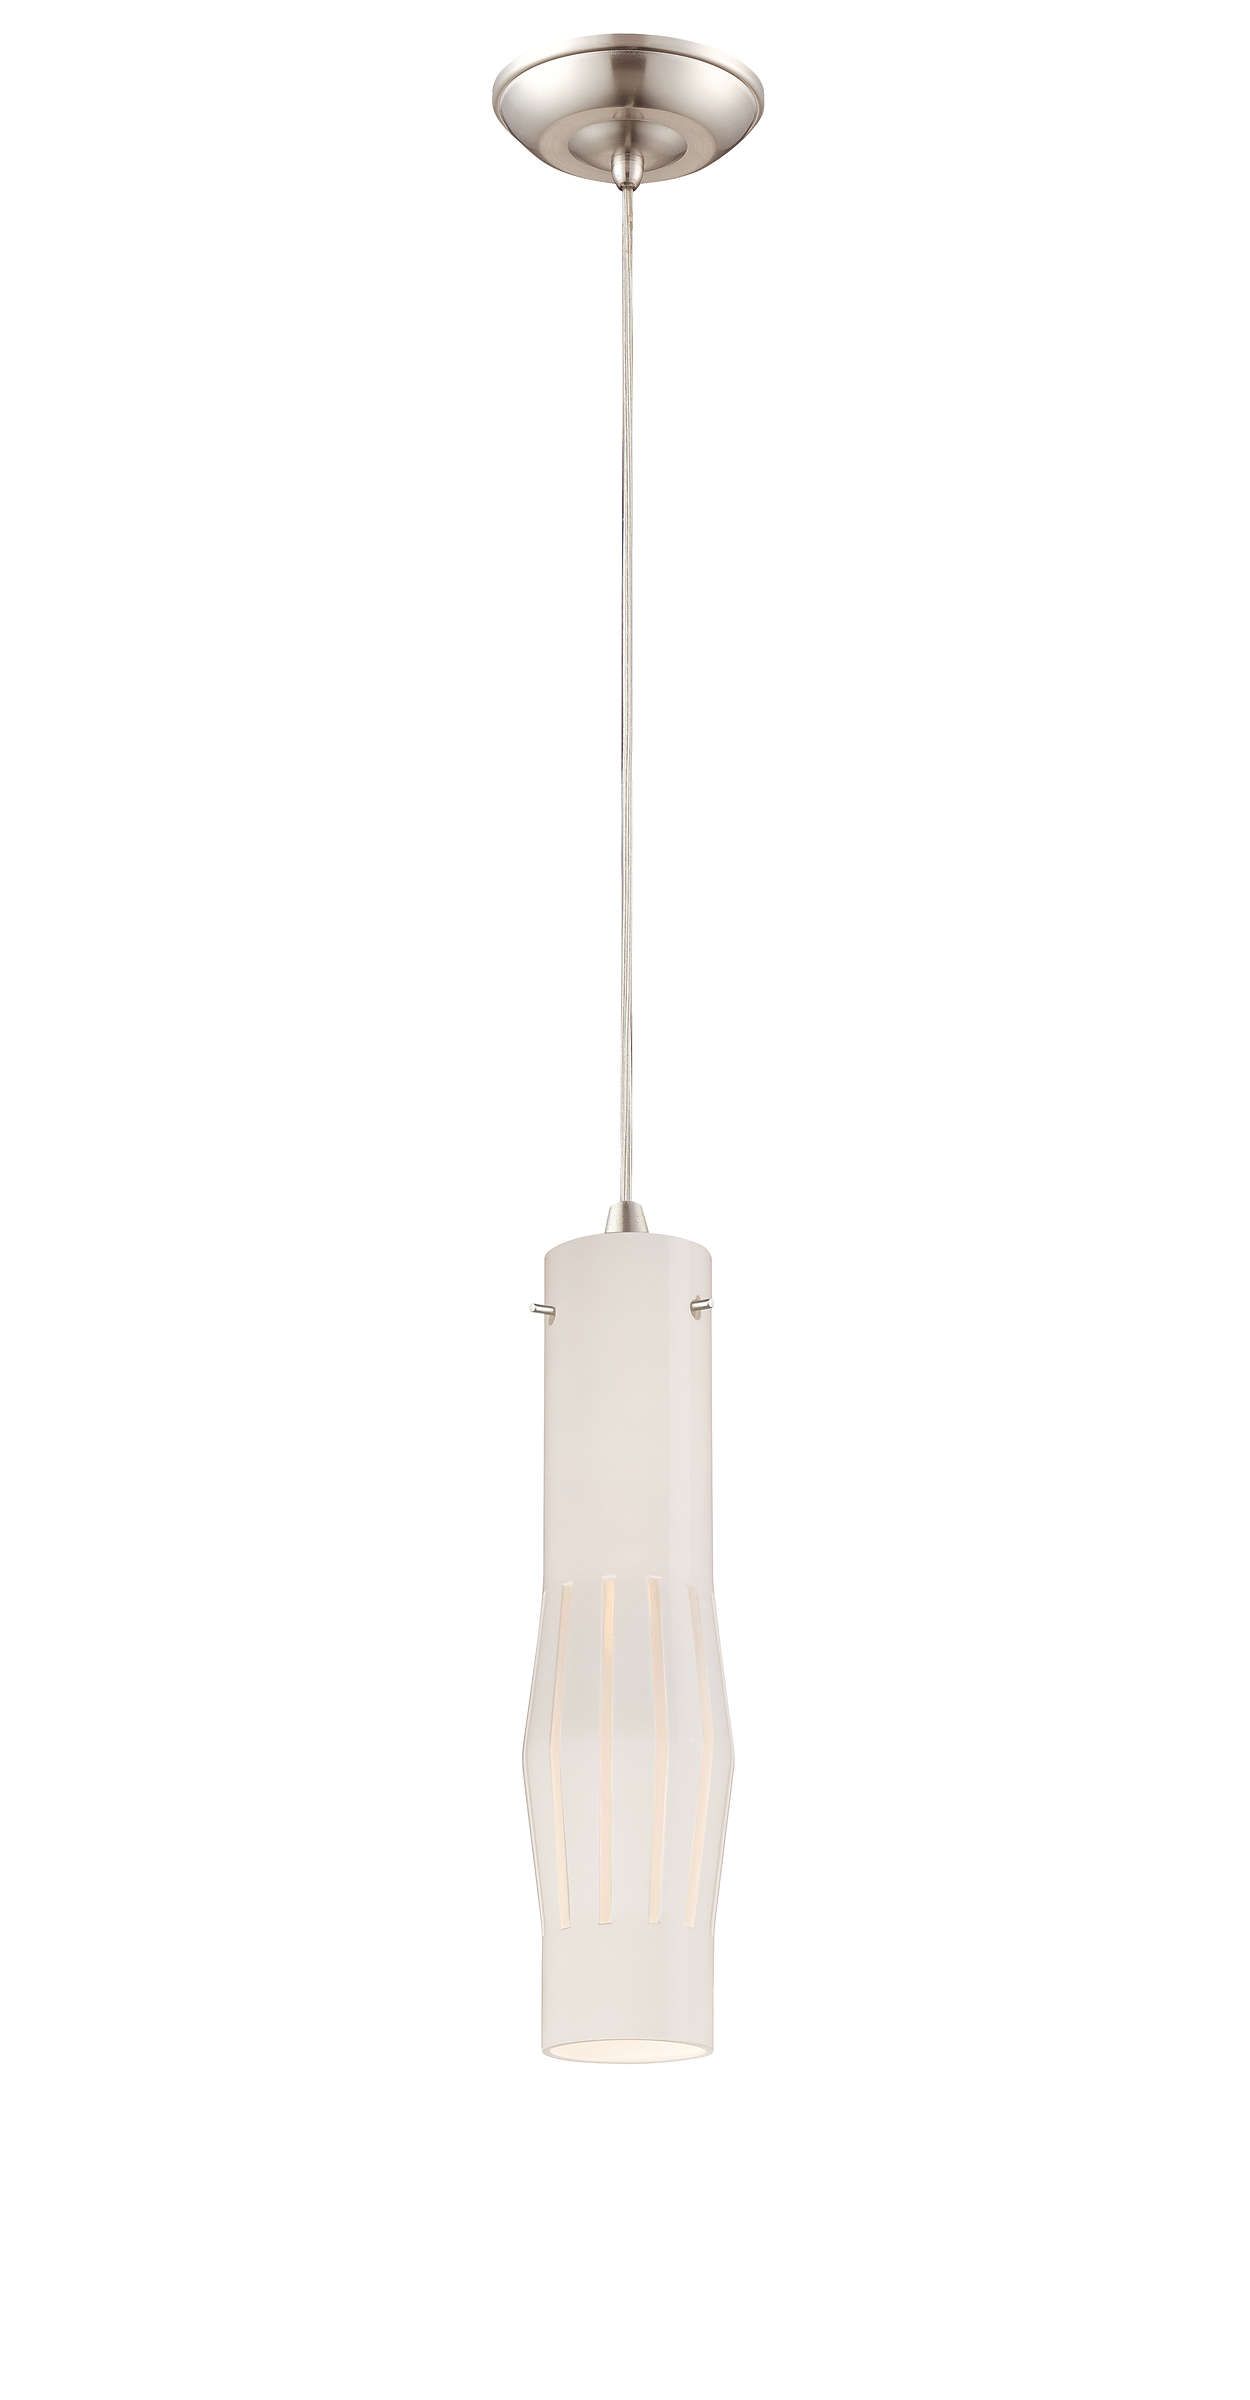 Expanse LED pendant in Satin Nickel finish